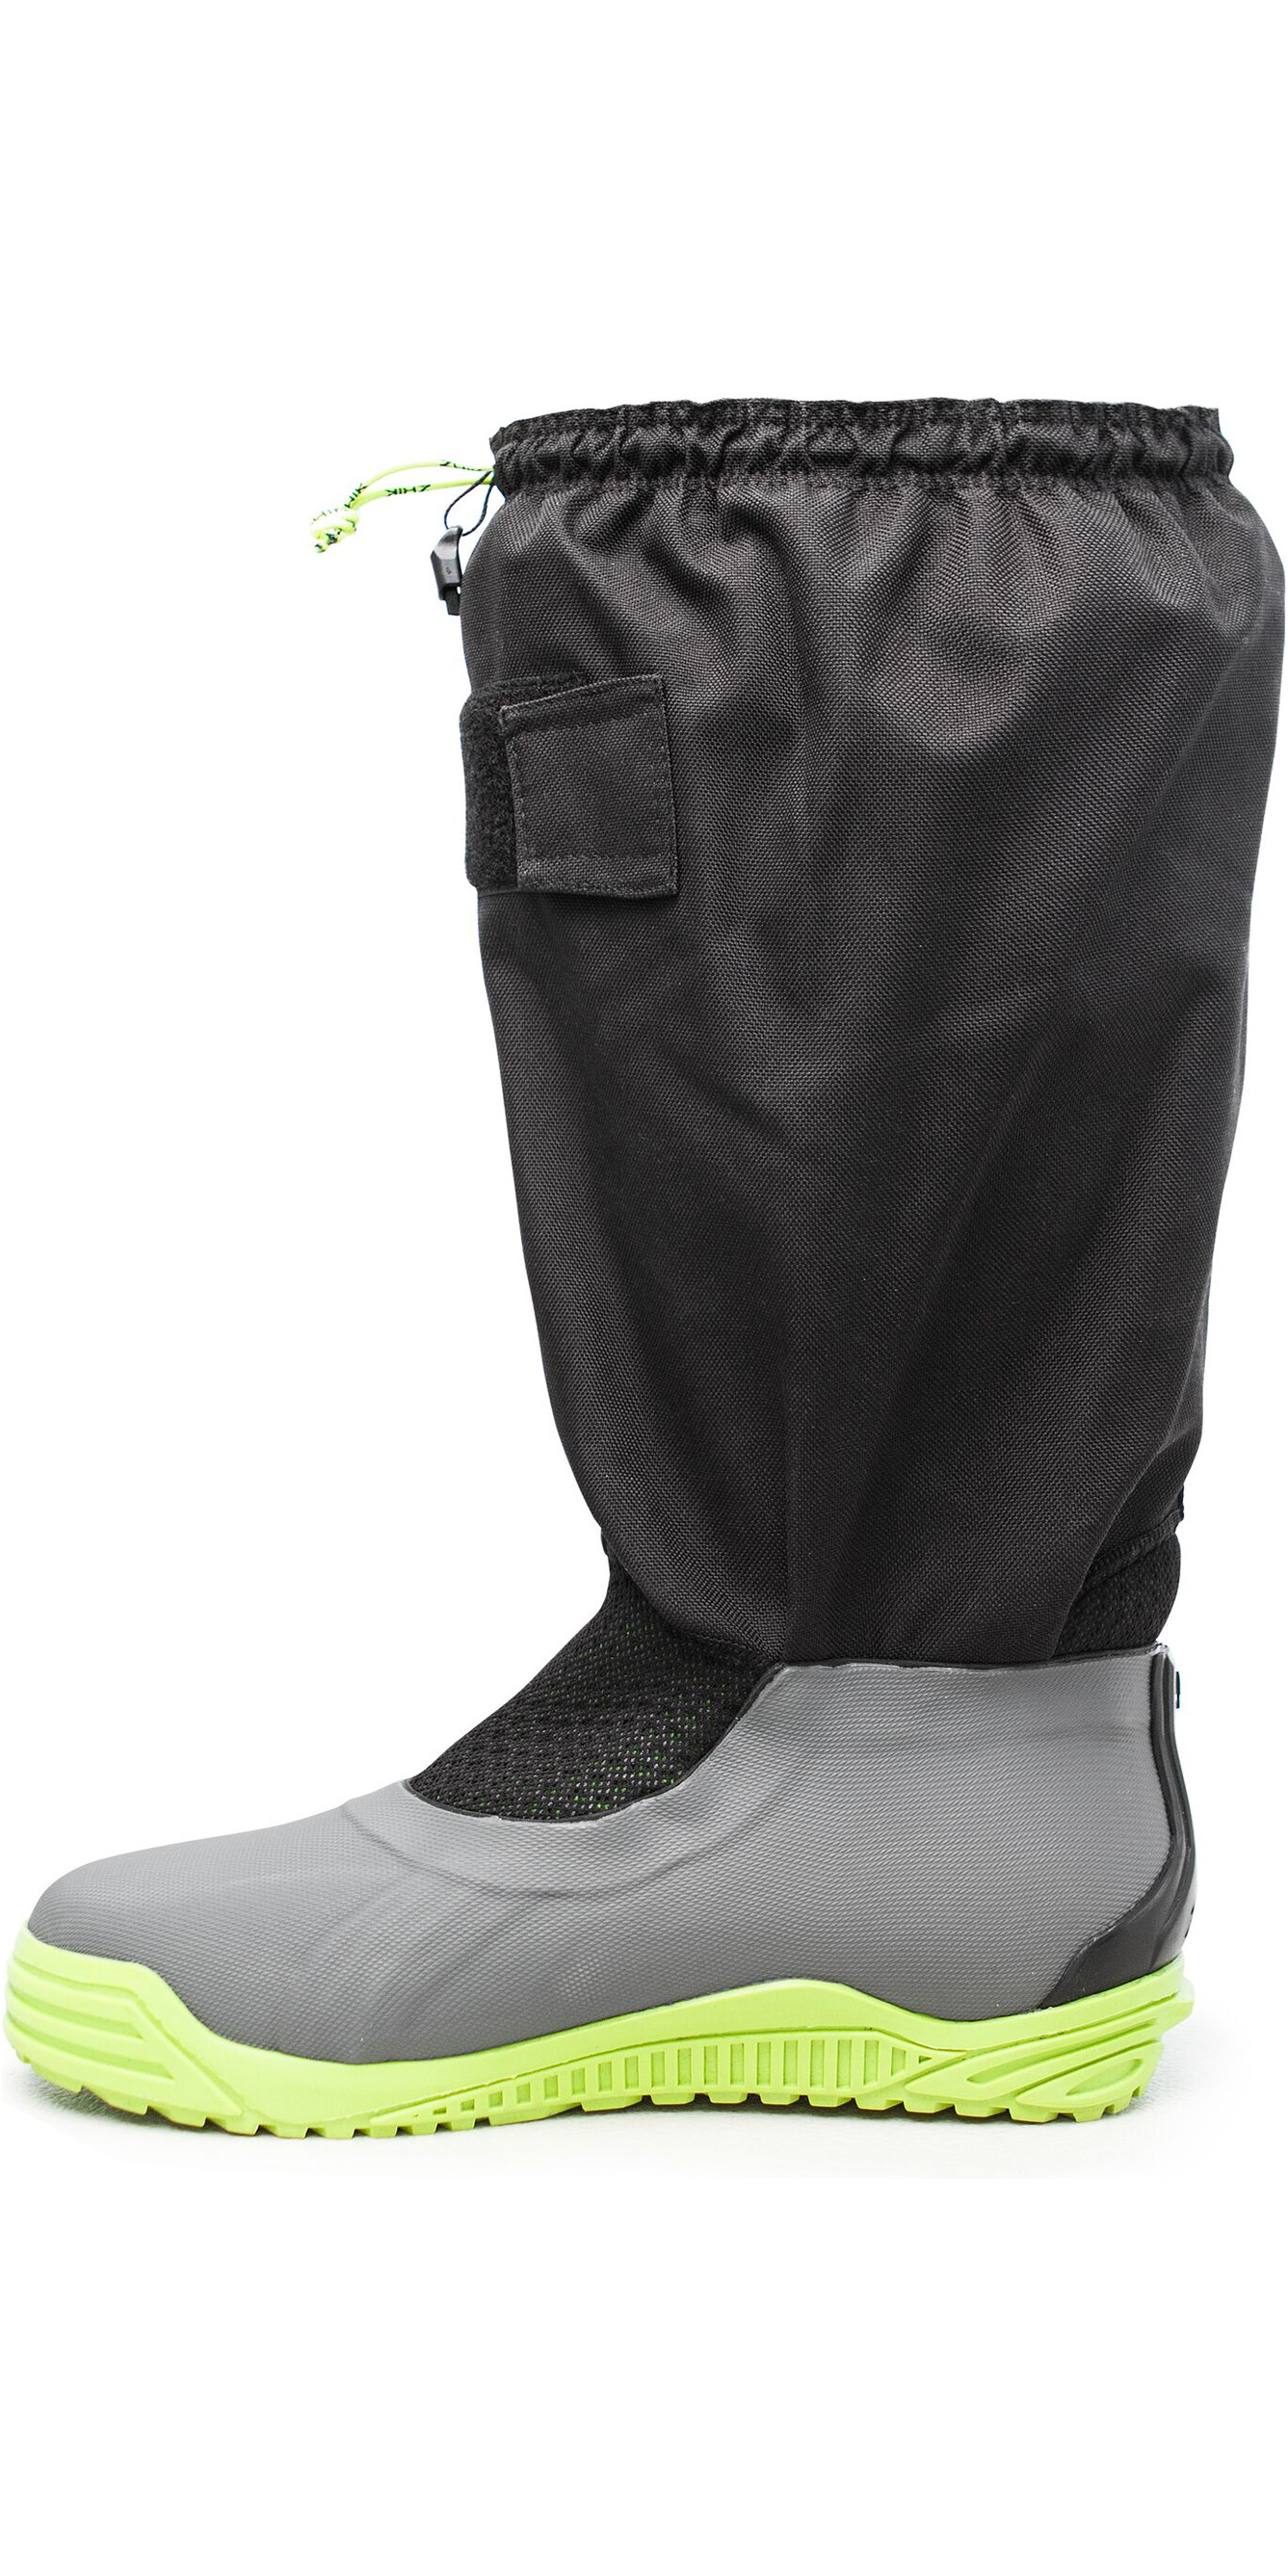 2019 Zhik ZK SeaBoot 900 Sailing Boots & Waterproof Dry Backpack Package Deal